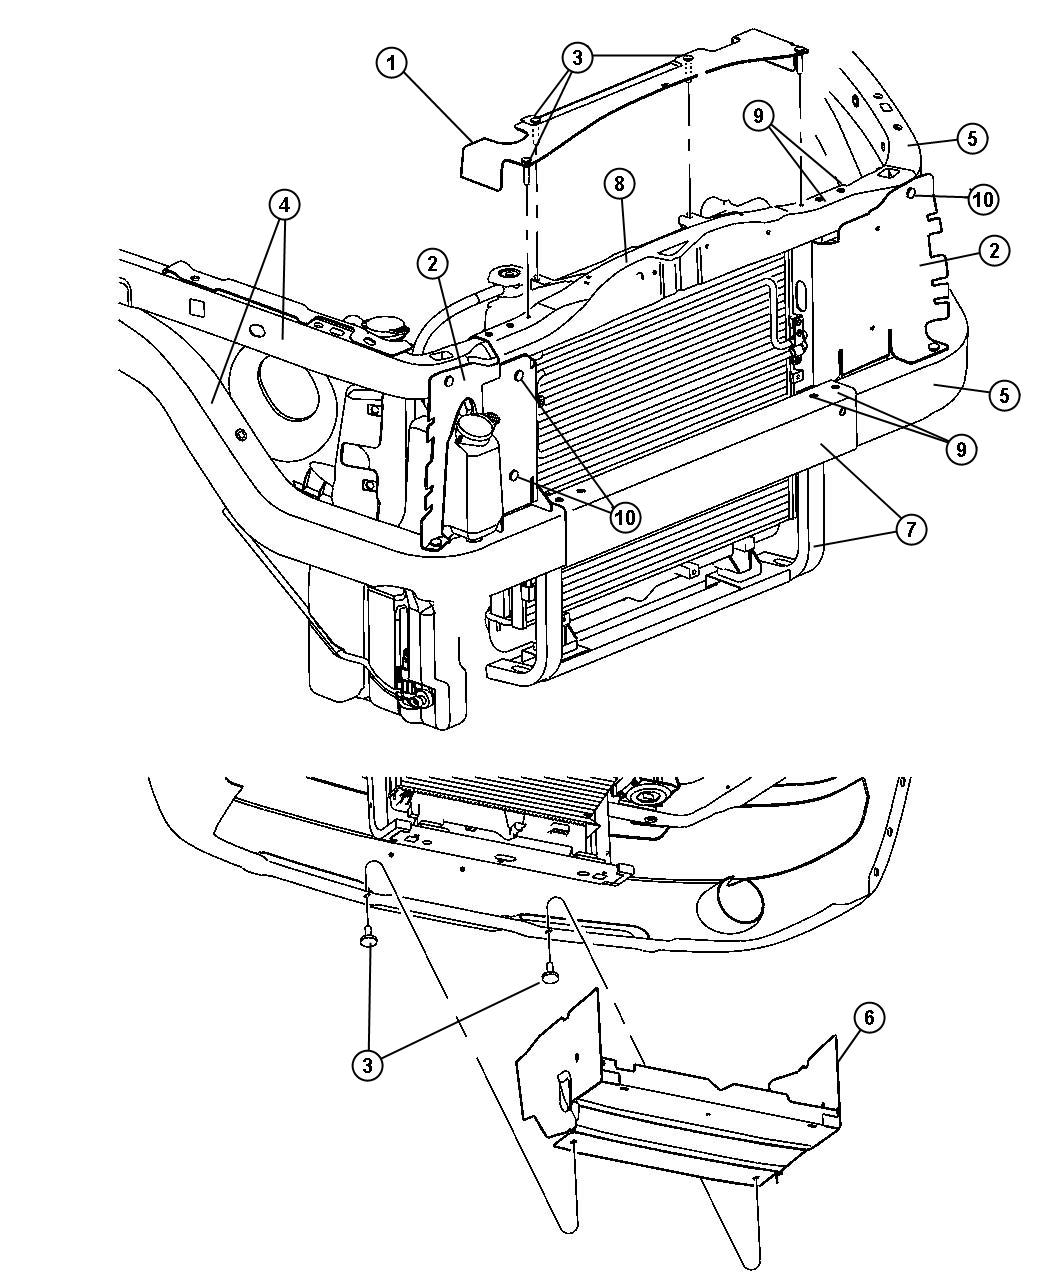 96 jeep cherokee engine diagram